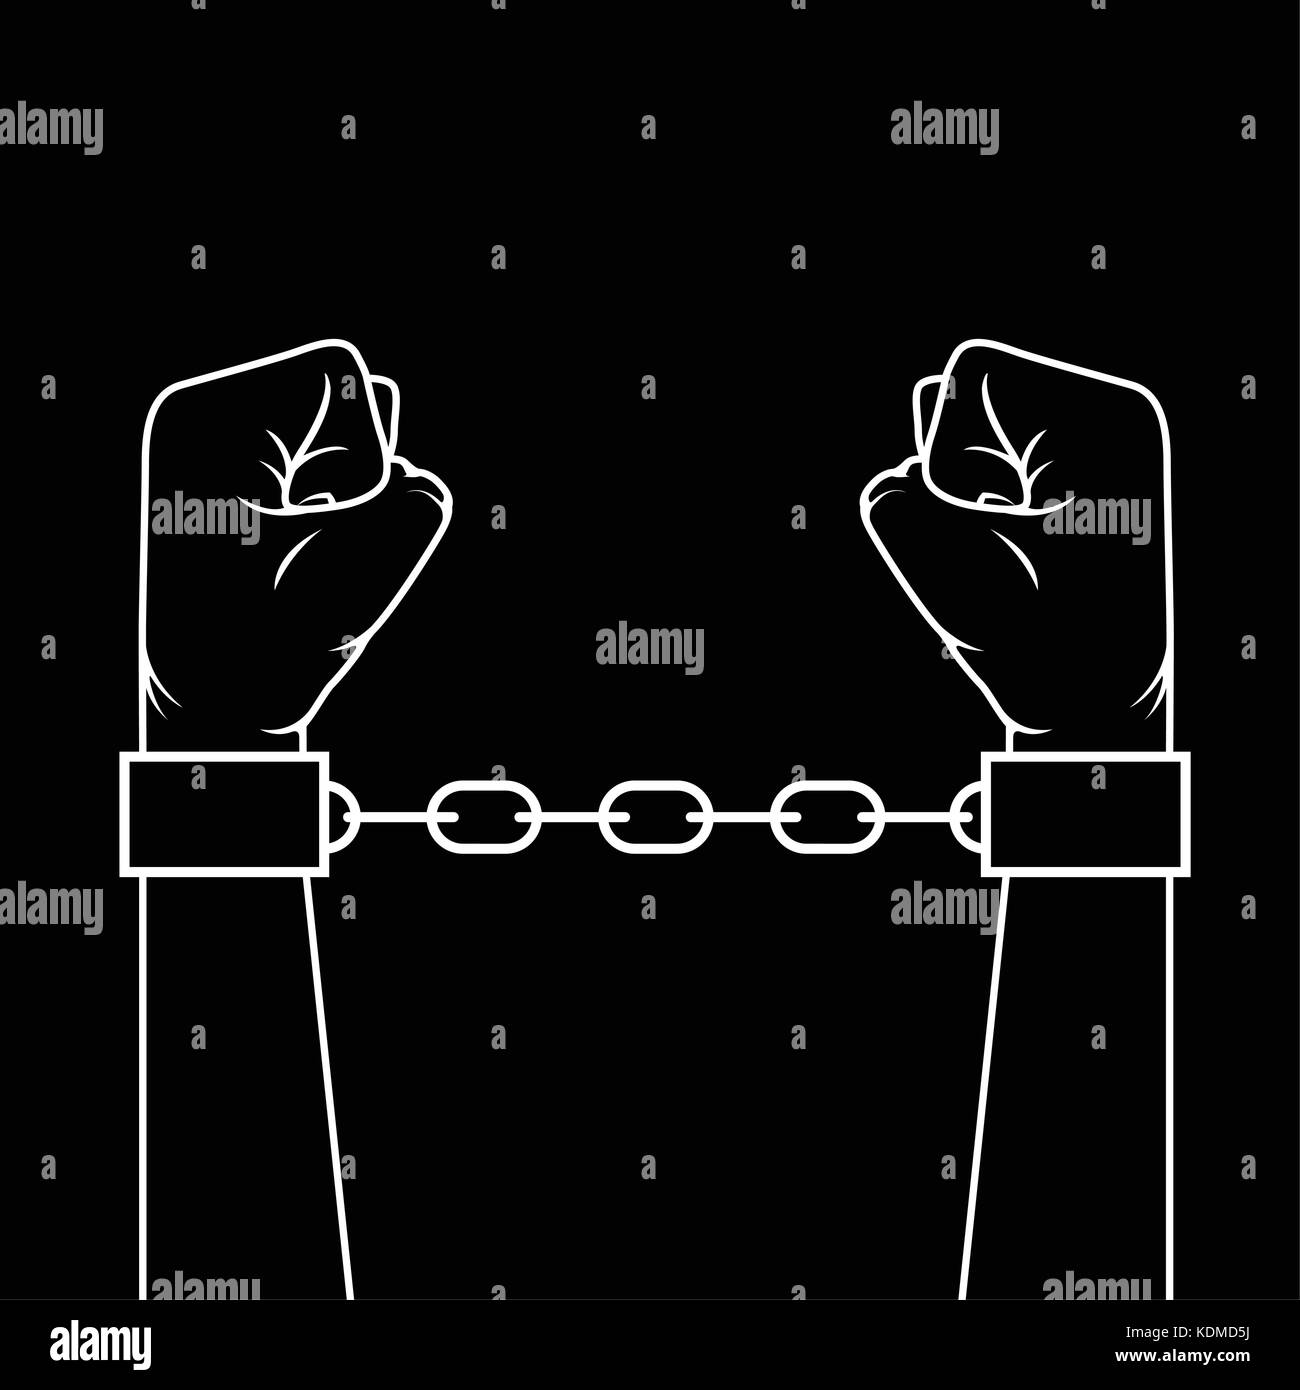 Hands with clenched fists in shackles - slavery concept - Stock Image